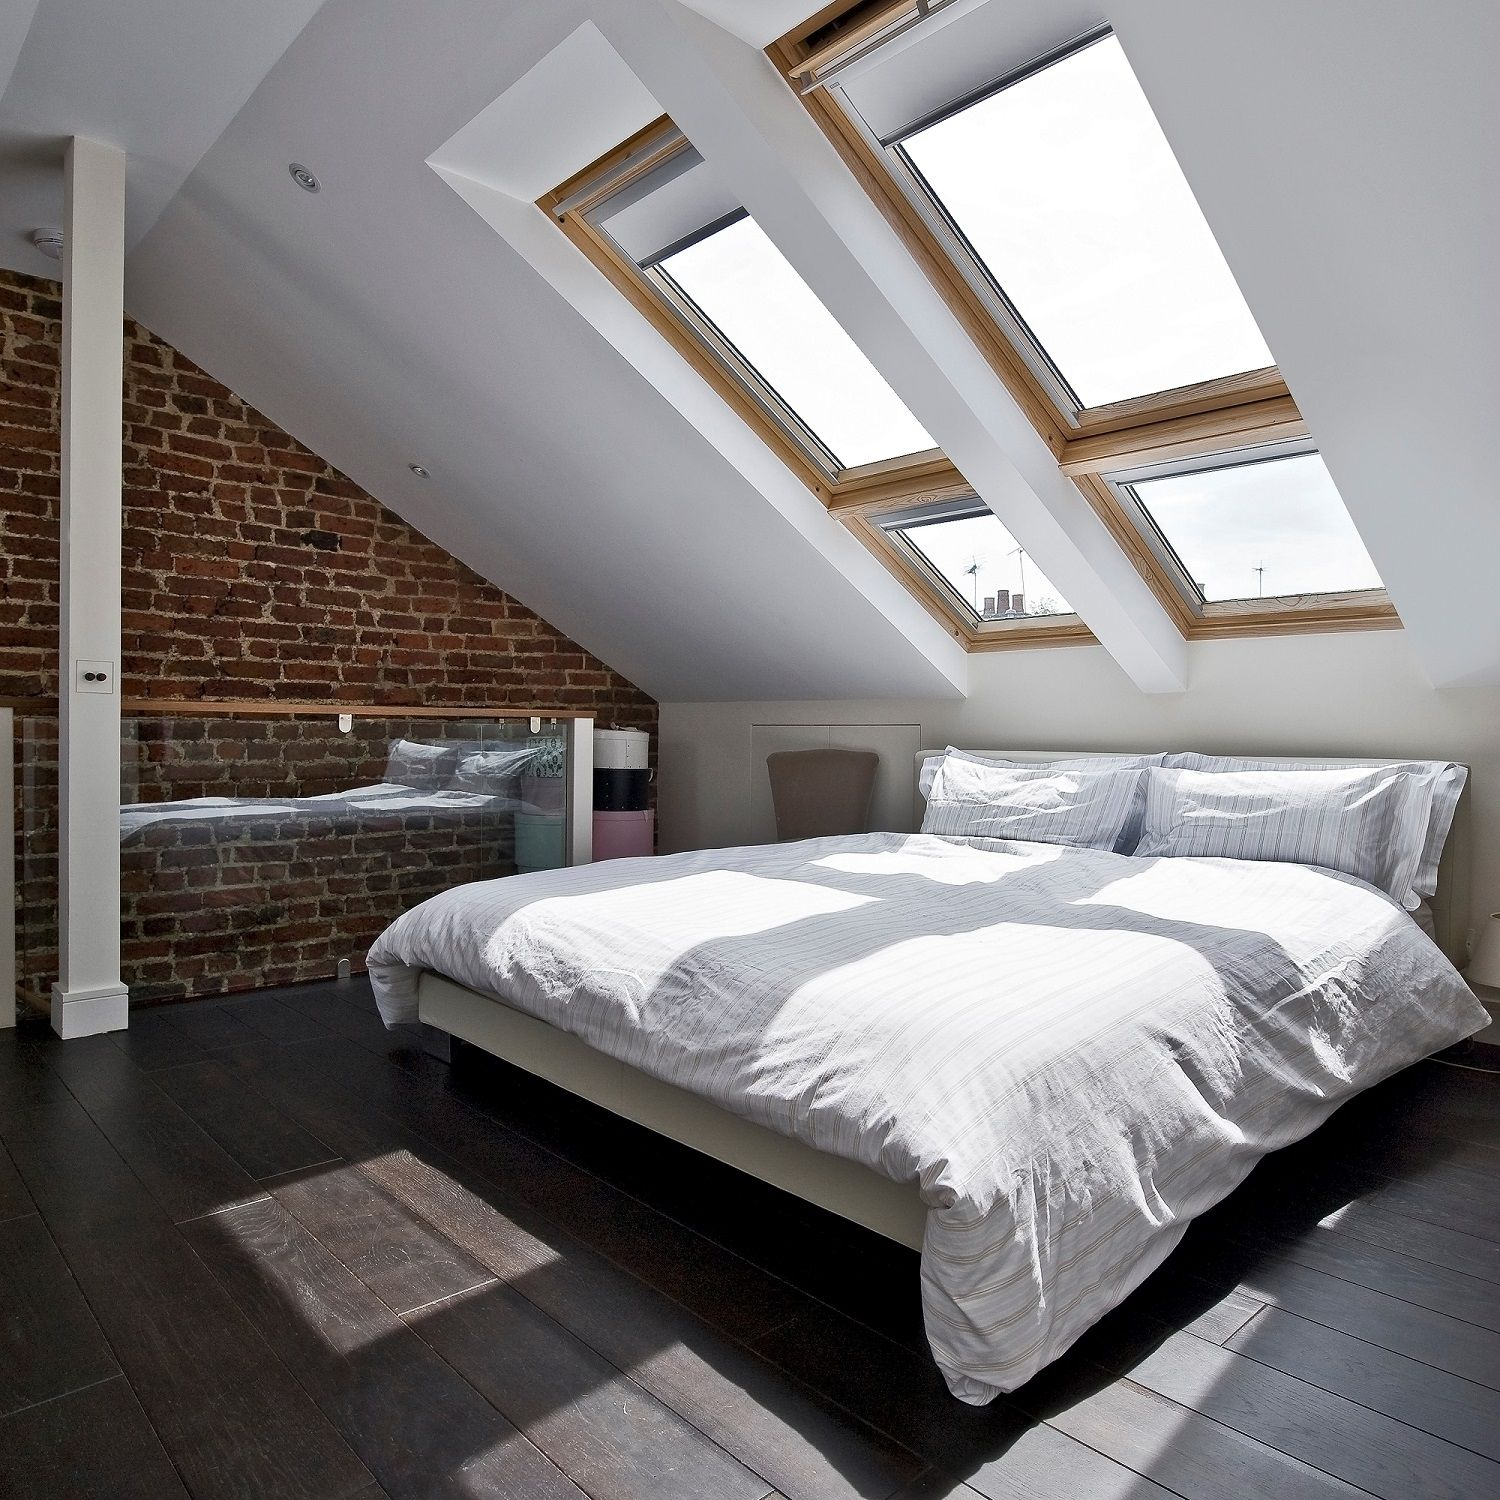 Unique bedroom interior design unique loft bedroom ideas  alongs home plan with loft bedroom